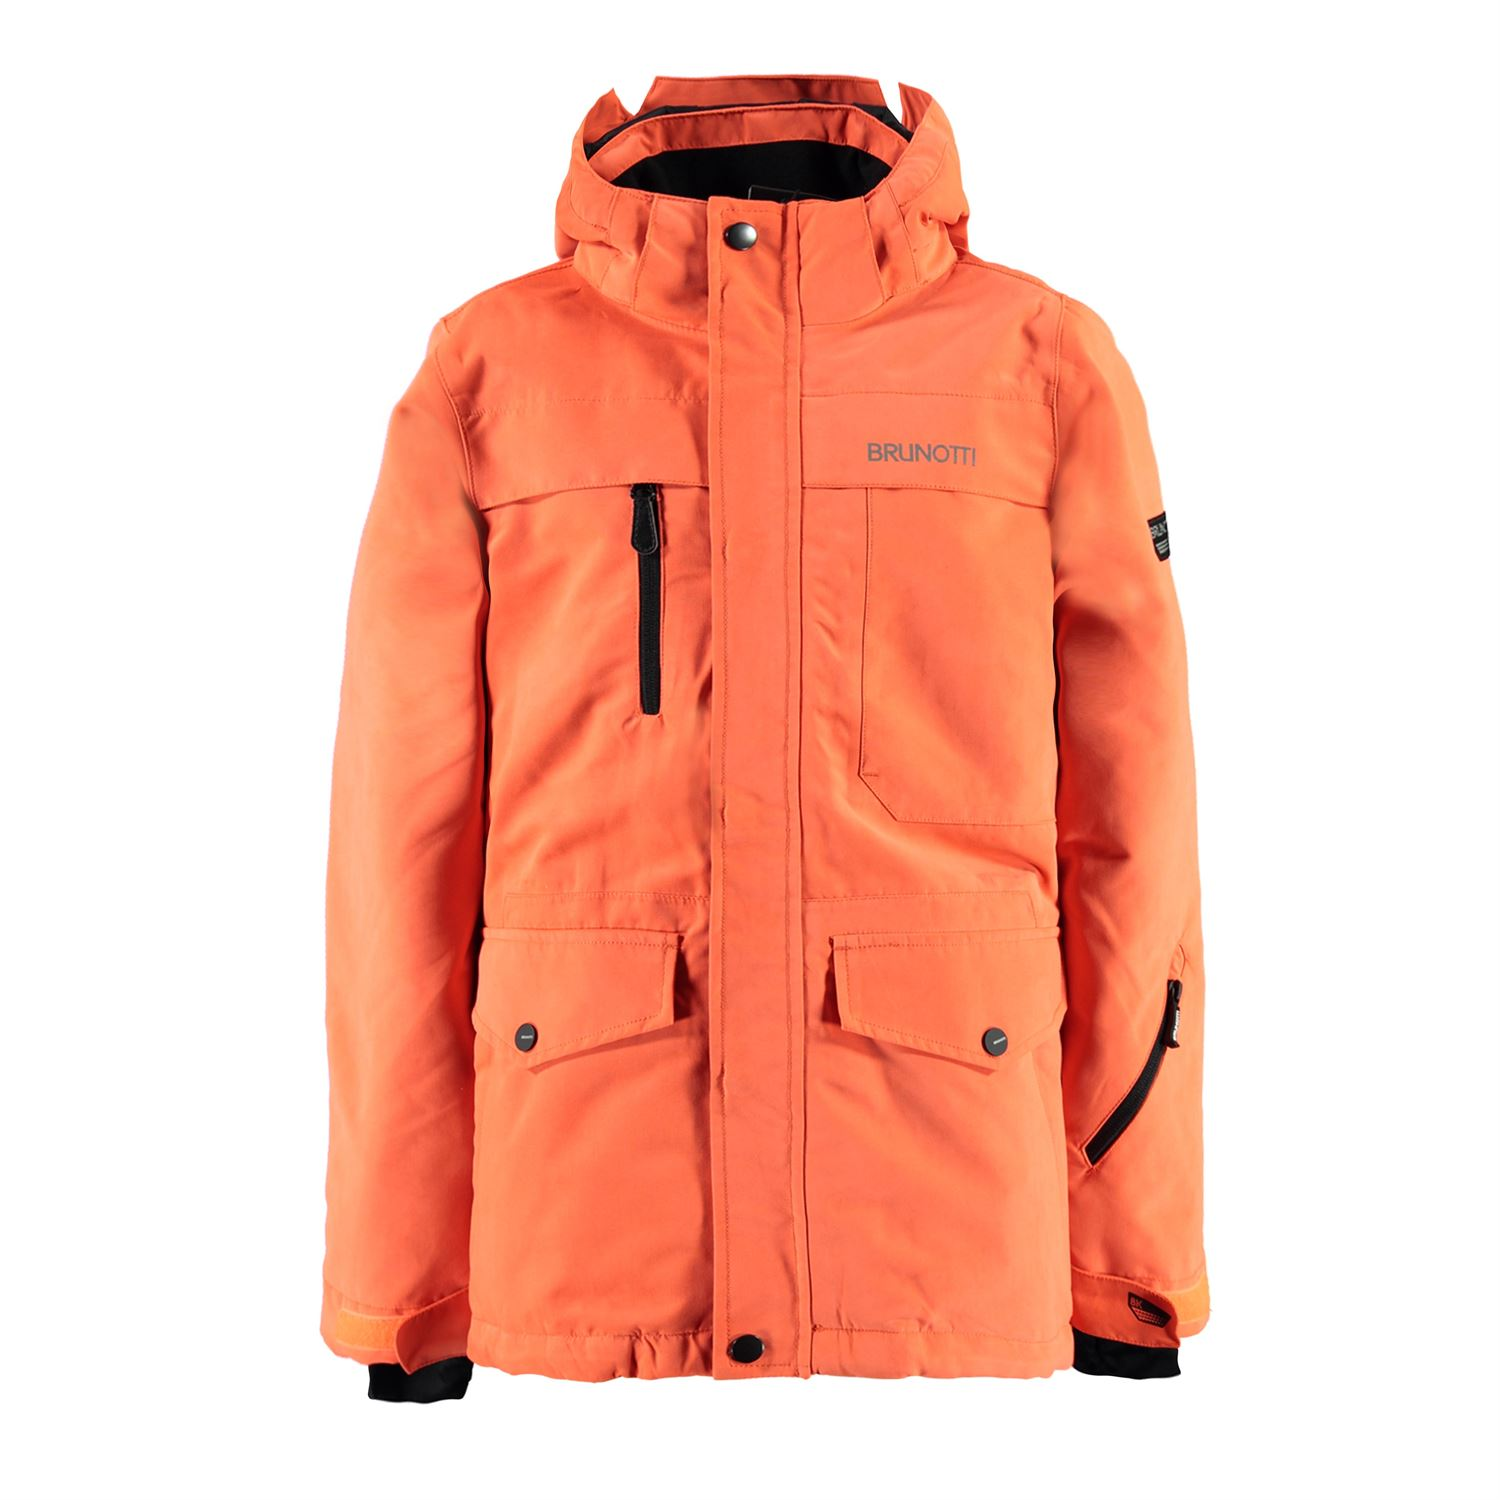 Brunotti Montano JR Boys Jacket